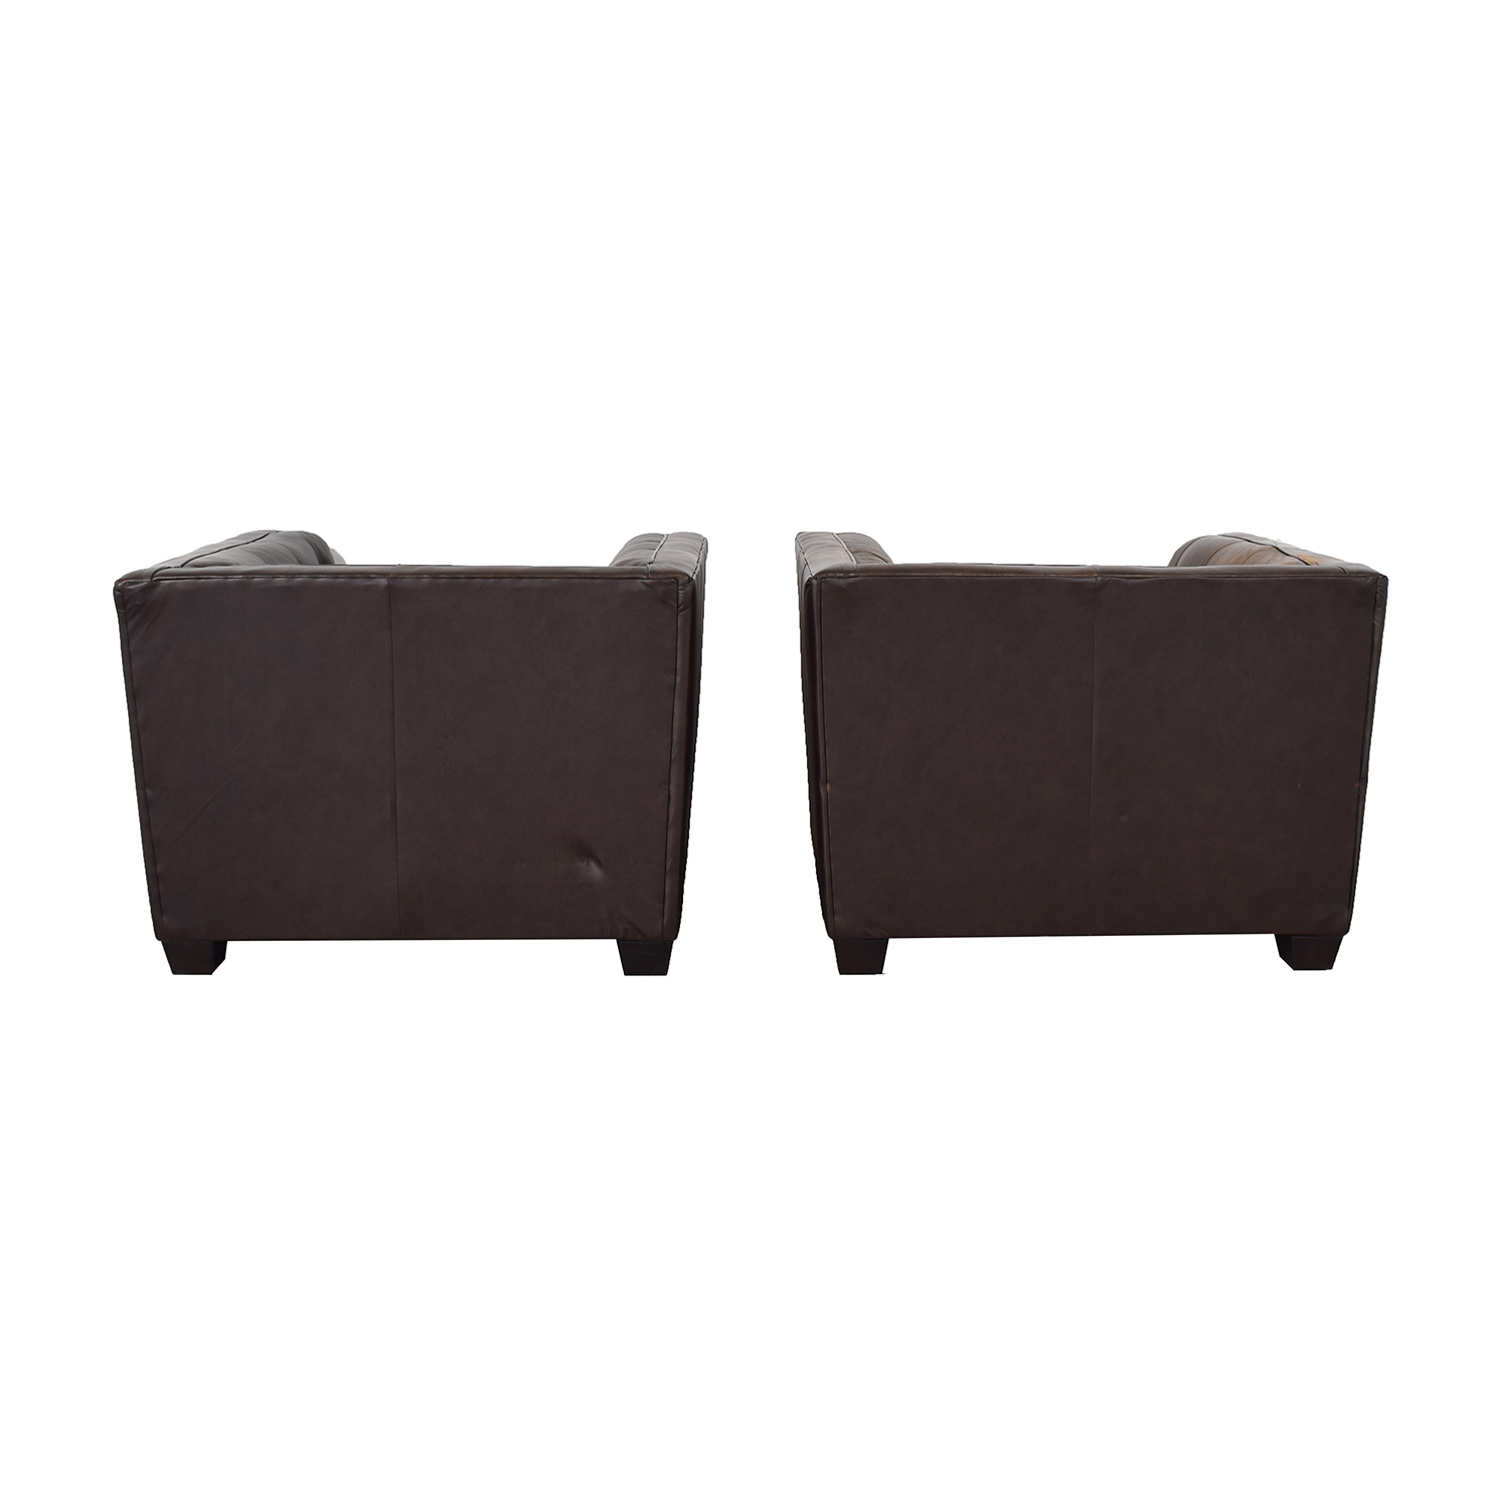 Ashley Furniture Ashley Furniture Tufted Accent Chairs used